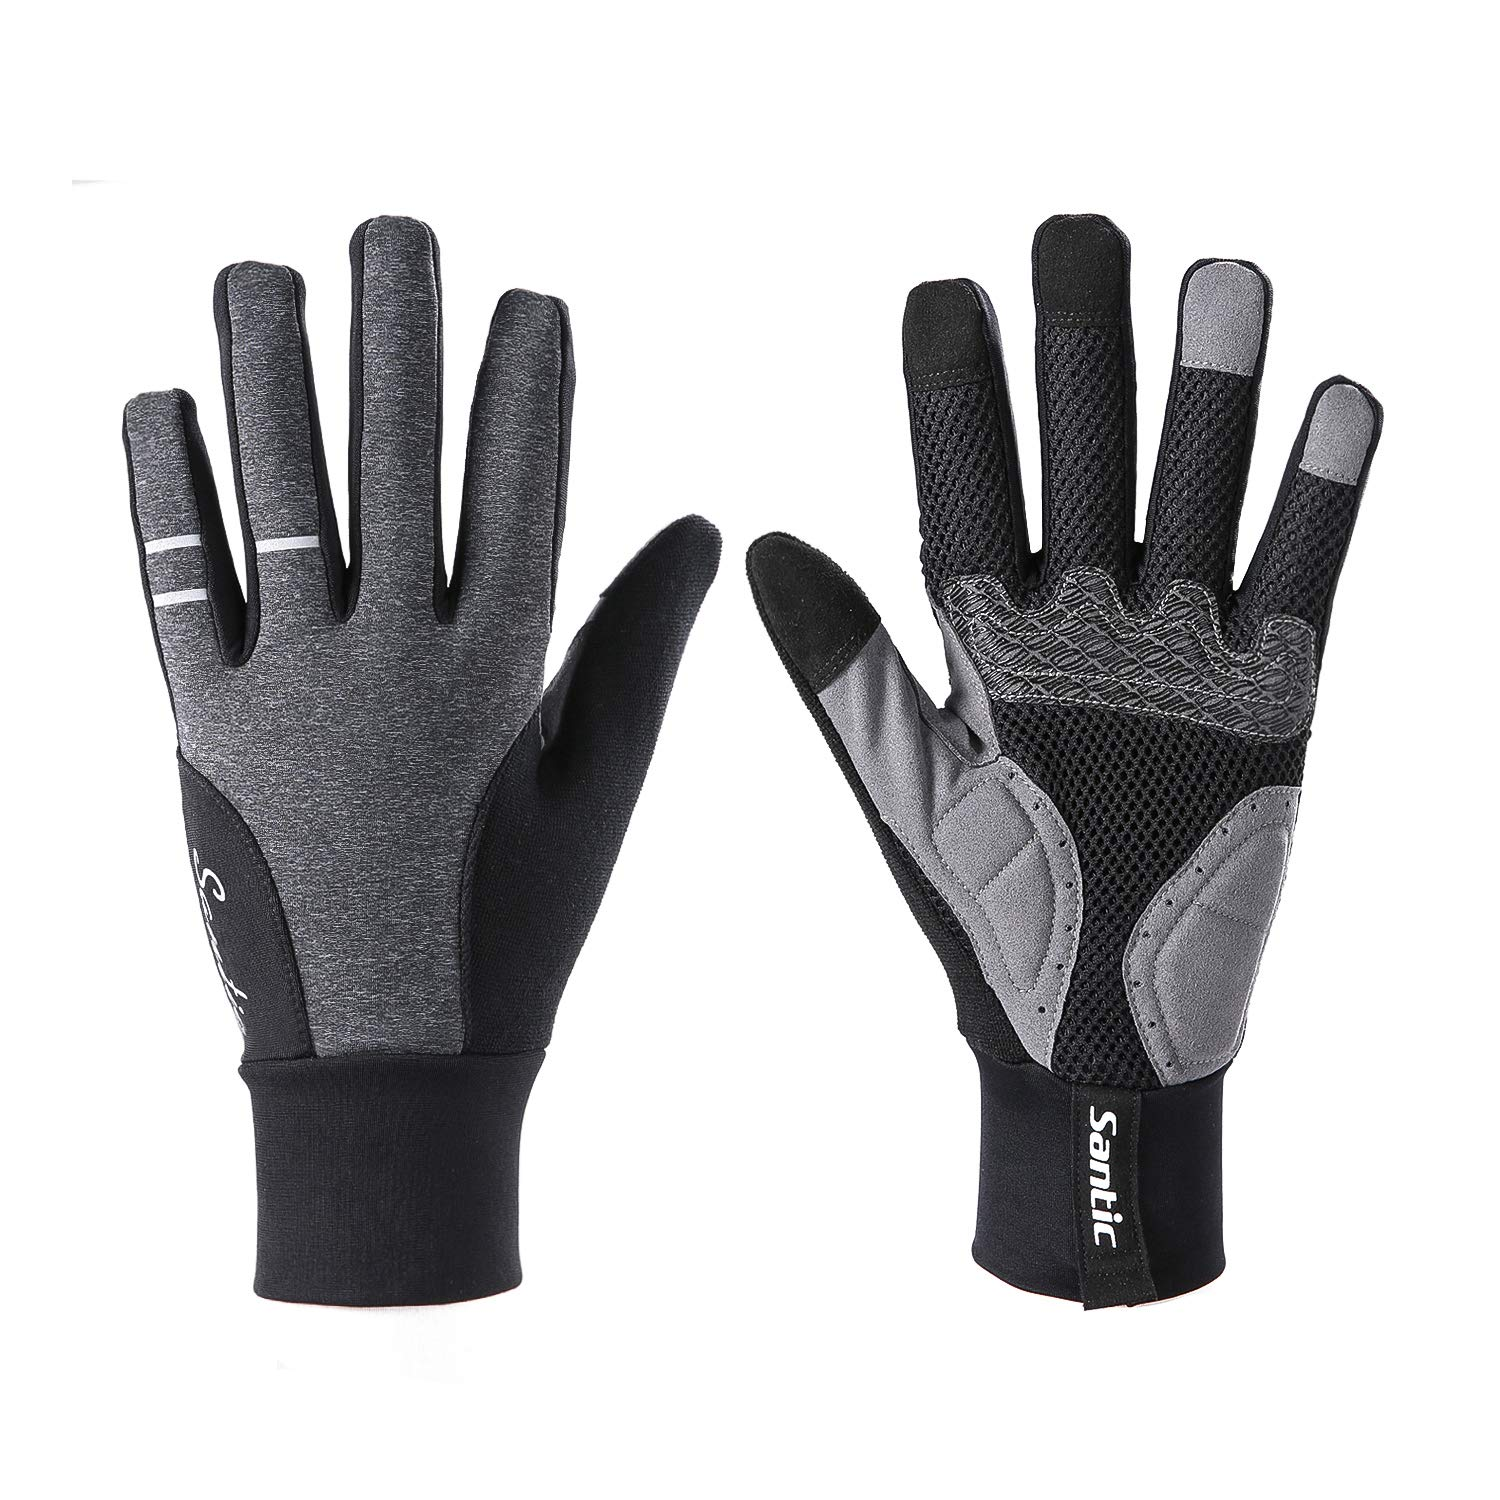 Santic Mens Thermal Cycling Gloves Touch Screen Glove Full Finger Warm Winter Inner Fleece Gloves for Workout Running Riding Skiing Outdoor Sports